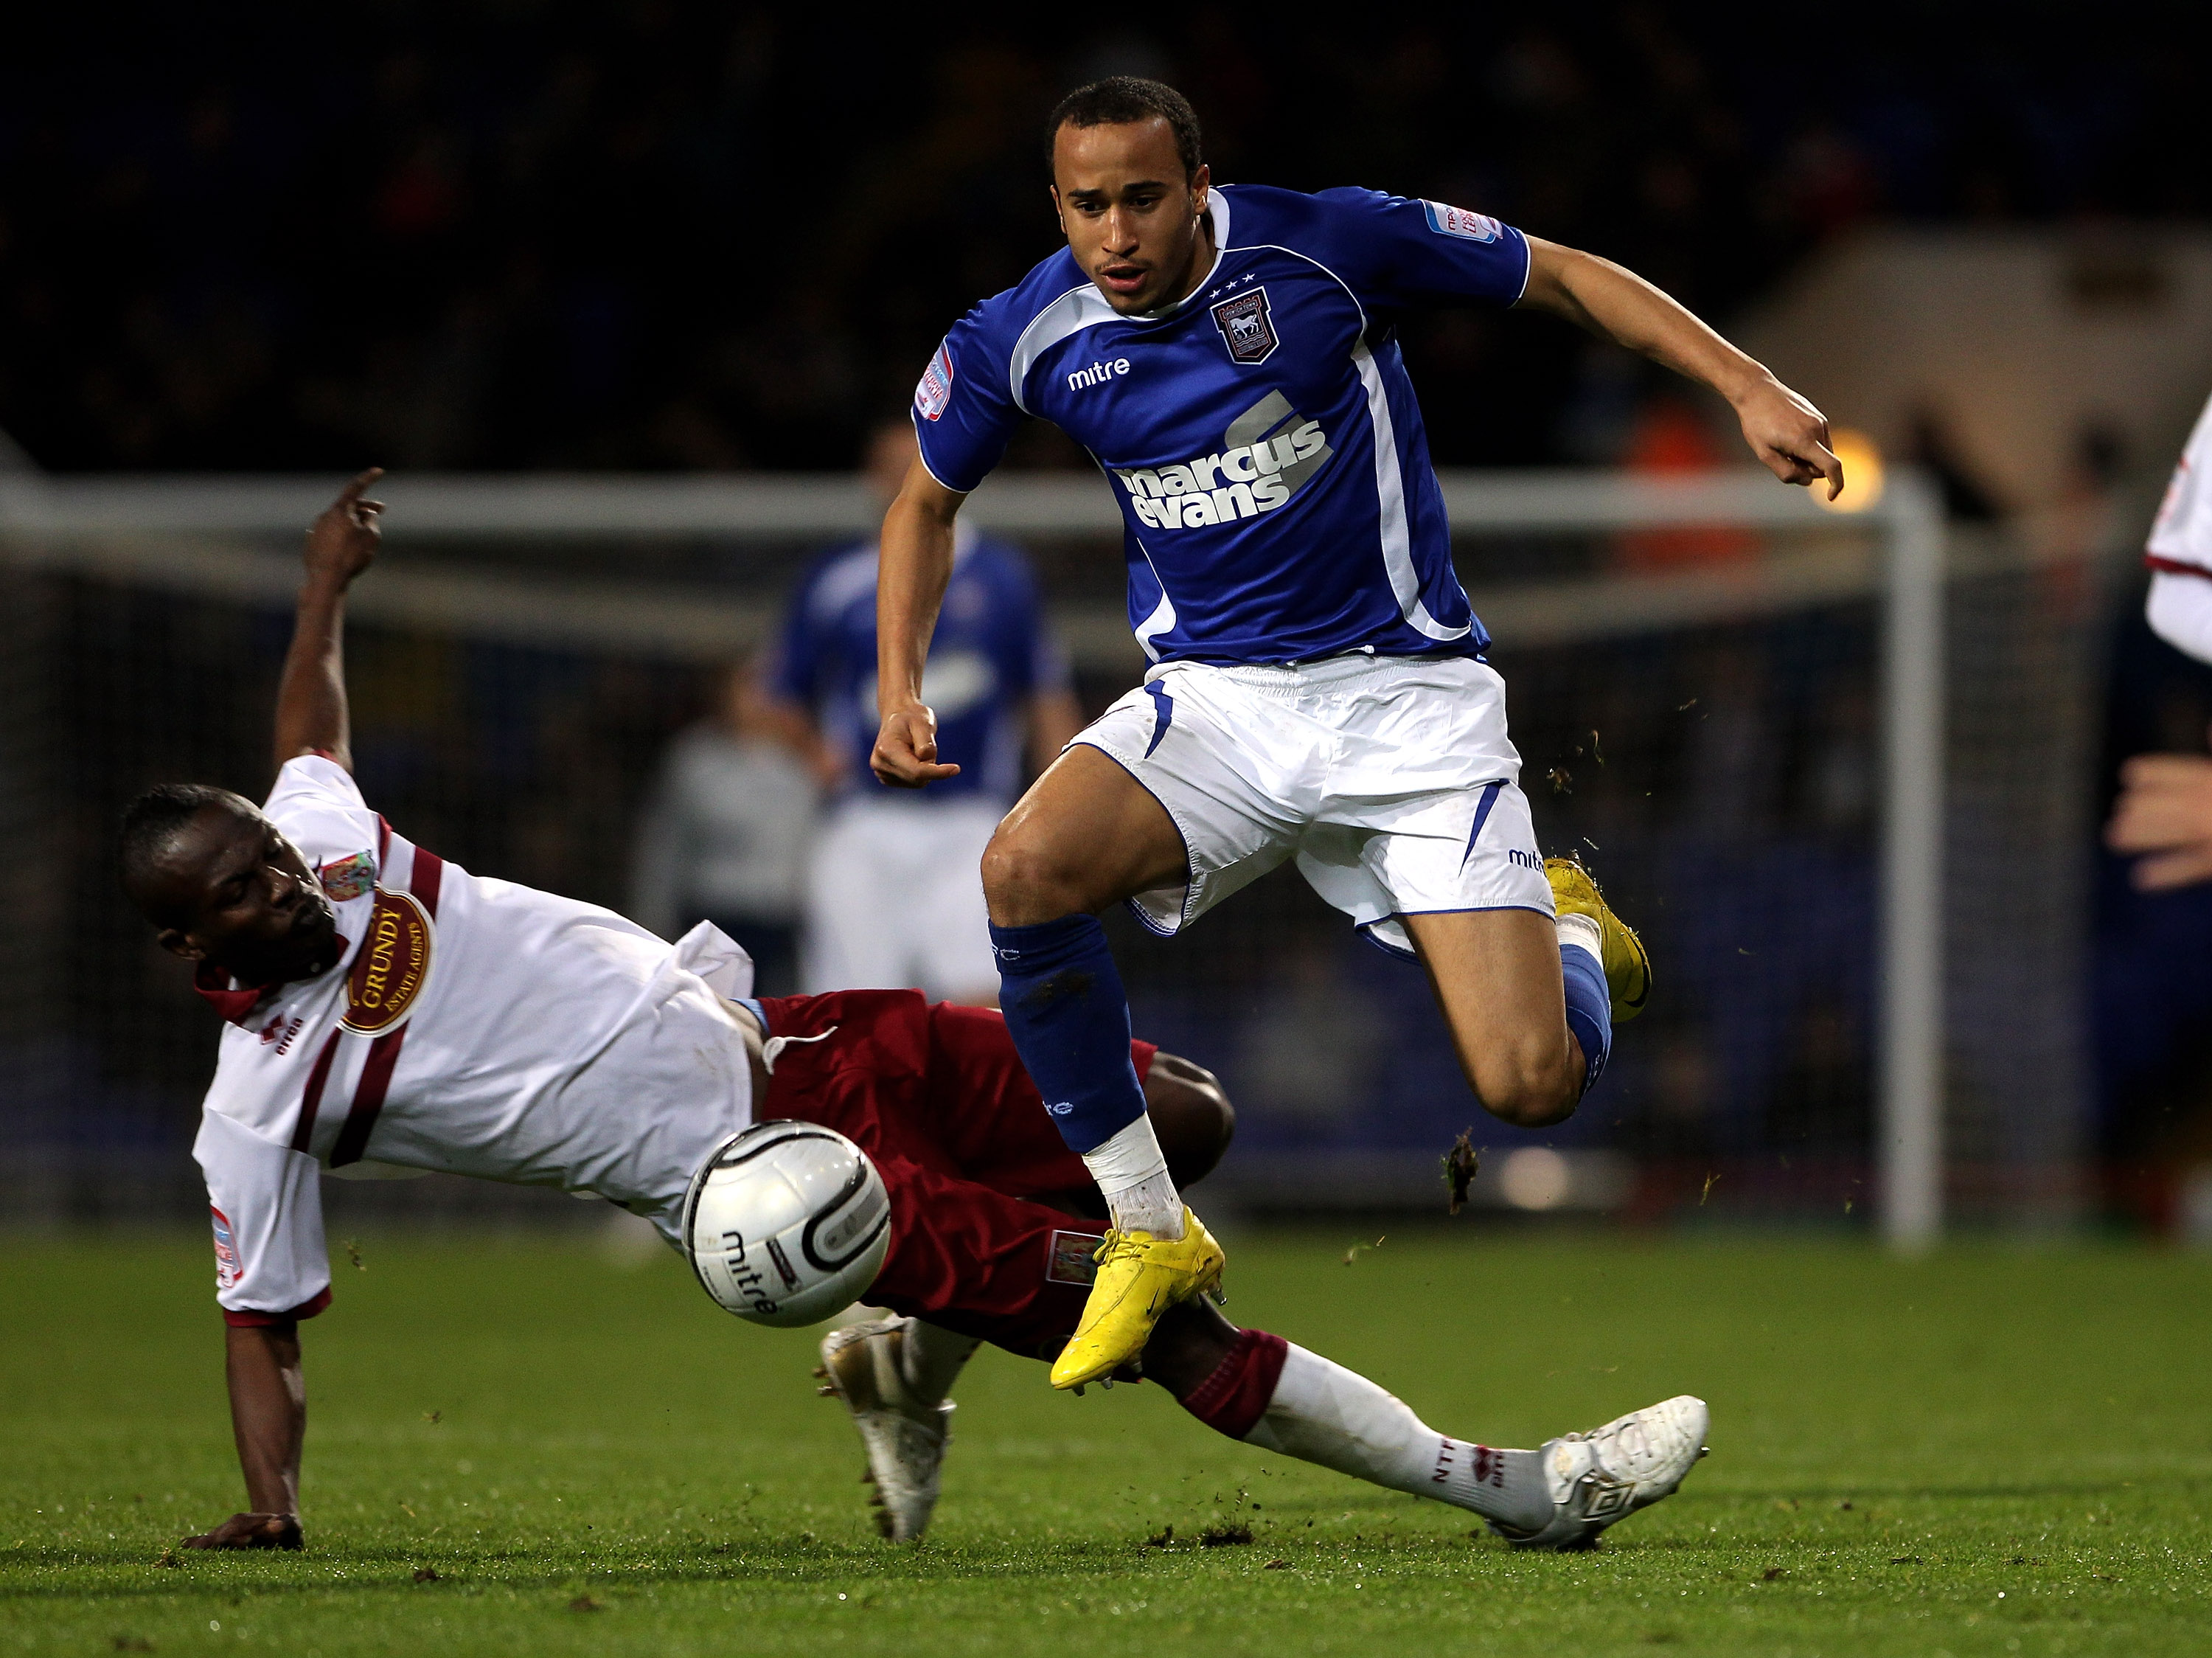 IPSWICH, ENGLAND - OCTOBER 26:  Andros Townsend of Ipswich Town moves away from Abdul Osman during the Carling Cup fourth round match between Ipswich Town and Northampton Town at Portman Road on October 26, 2010 in Ipswich, England.  (Photo by David Roger